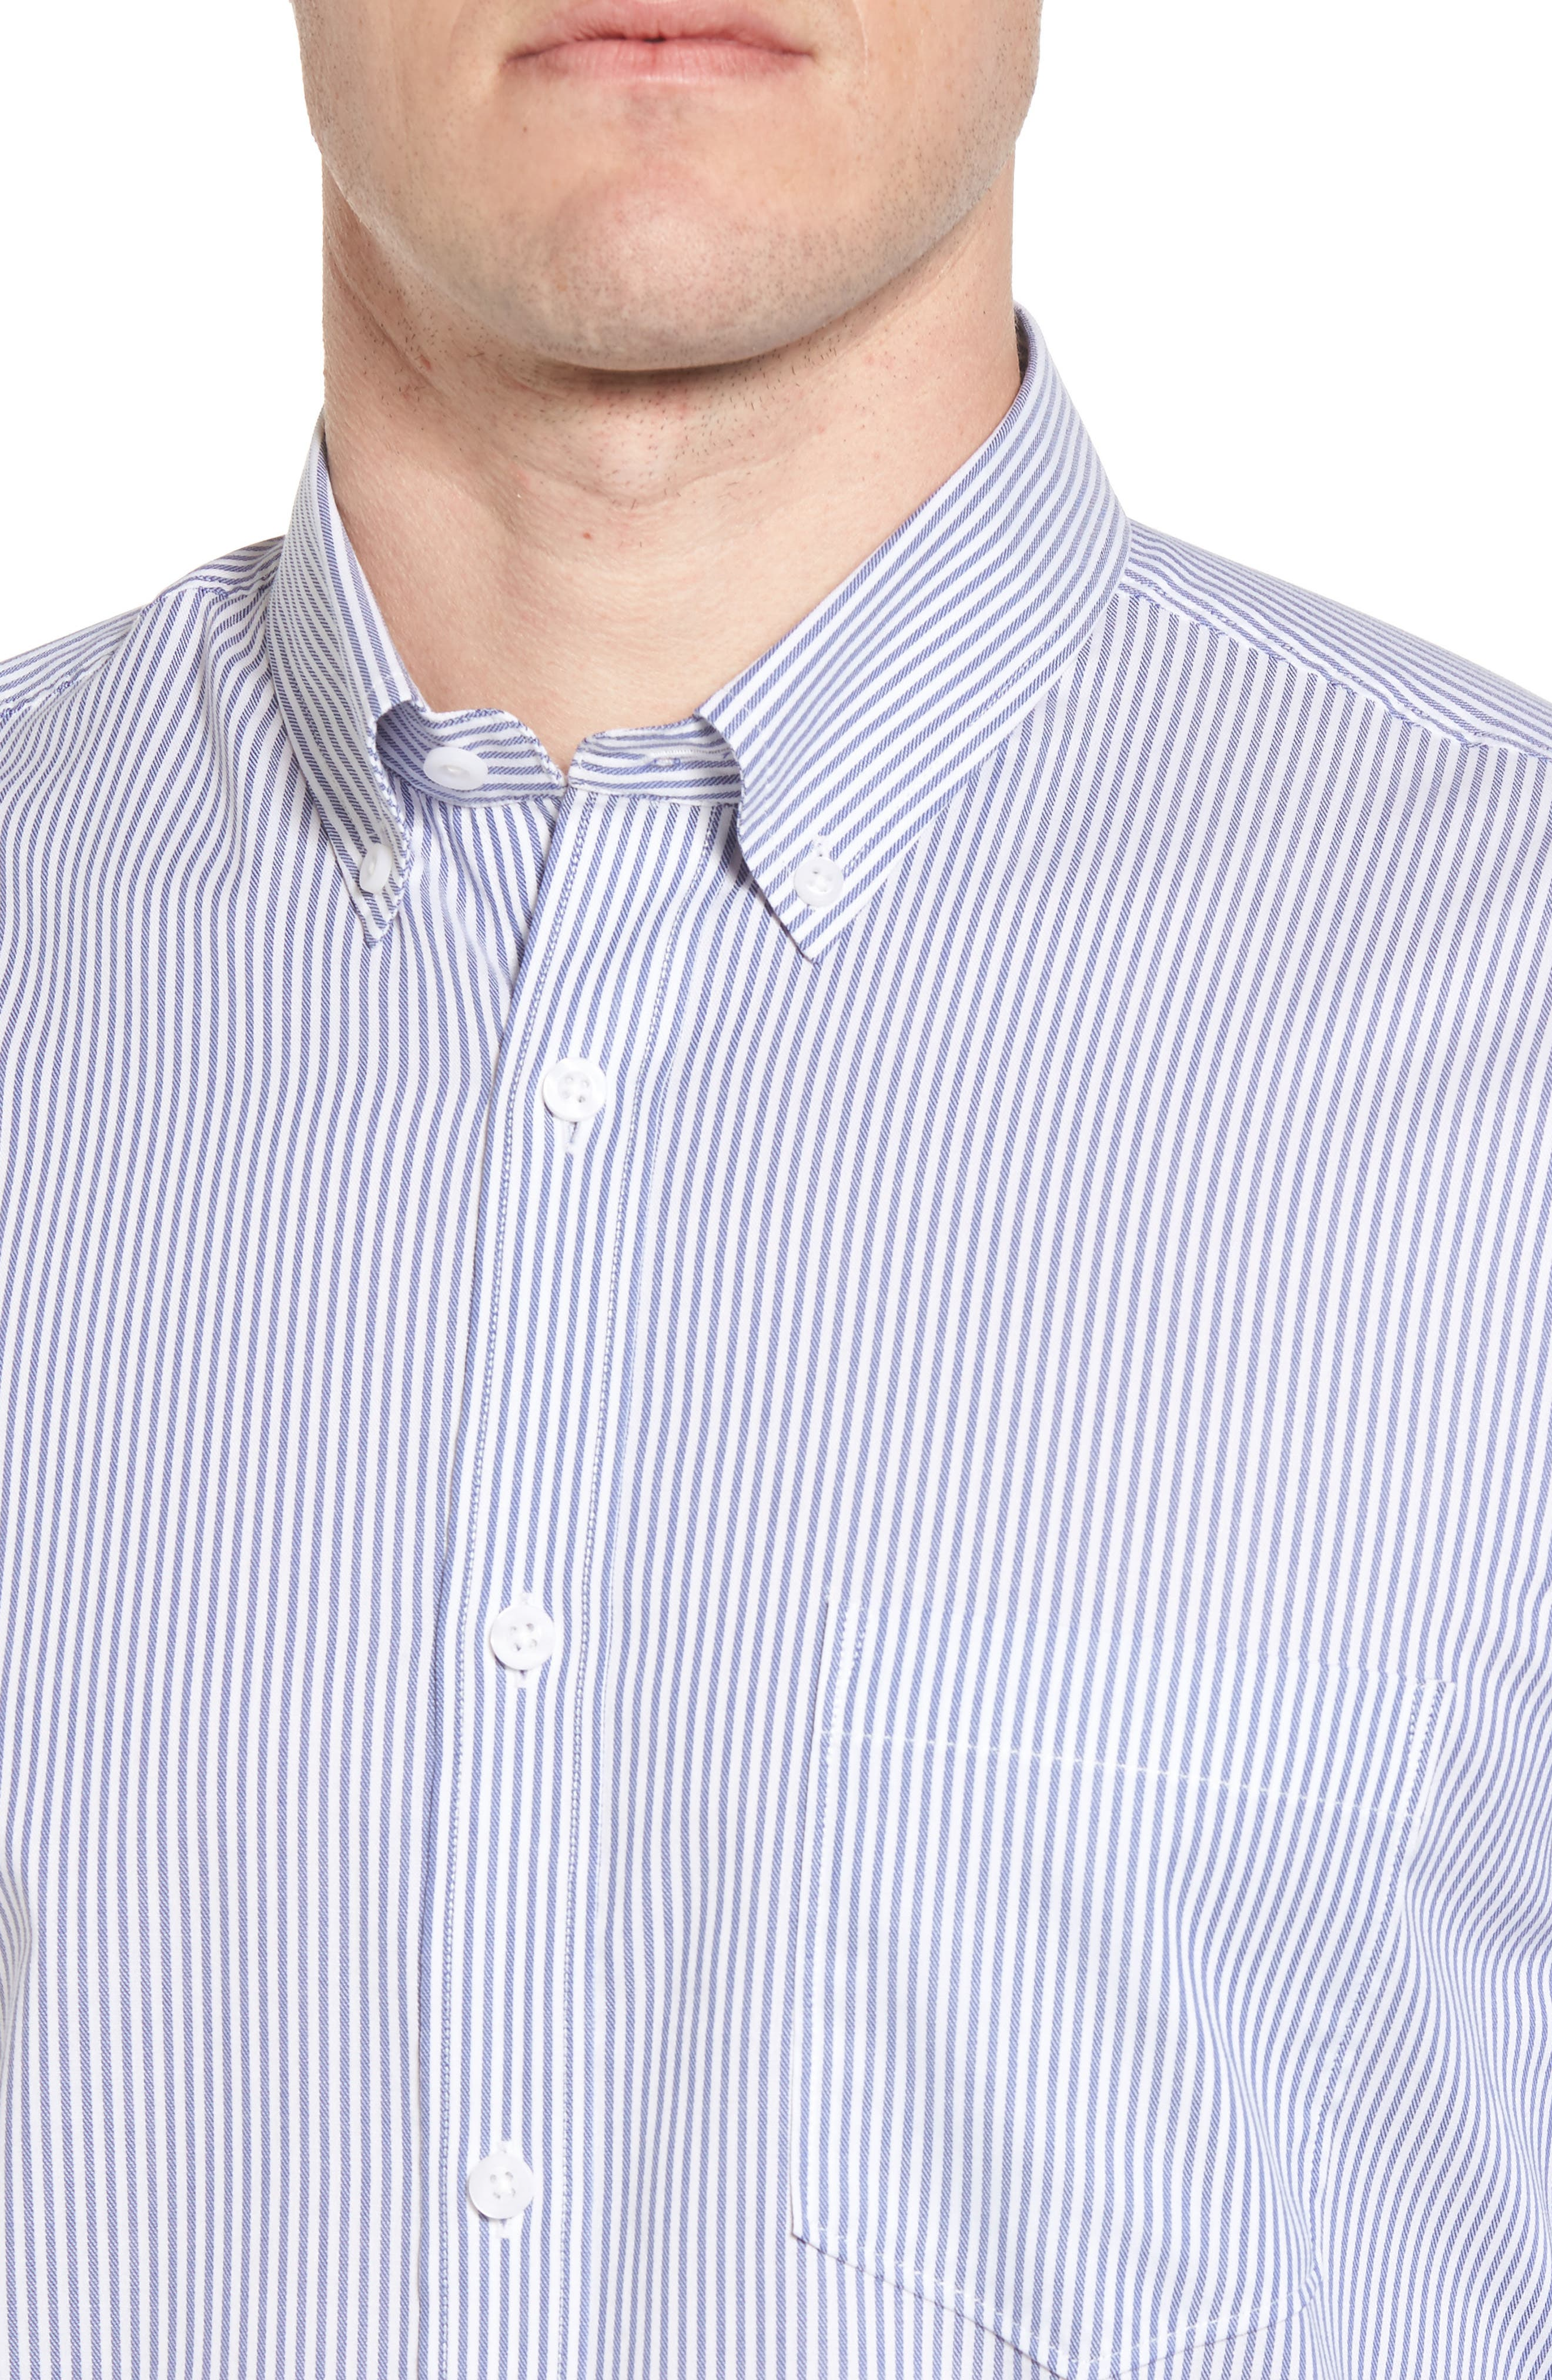 Tech-Smart Regular Fit Stripe Sport Shirt,                             Alternate thumbnail 4, color,